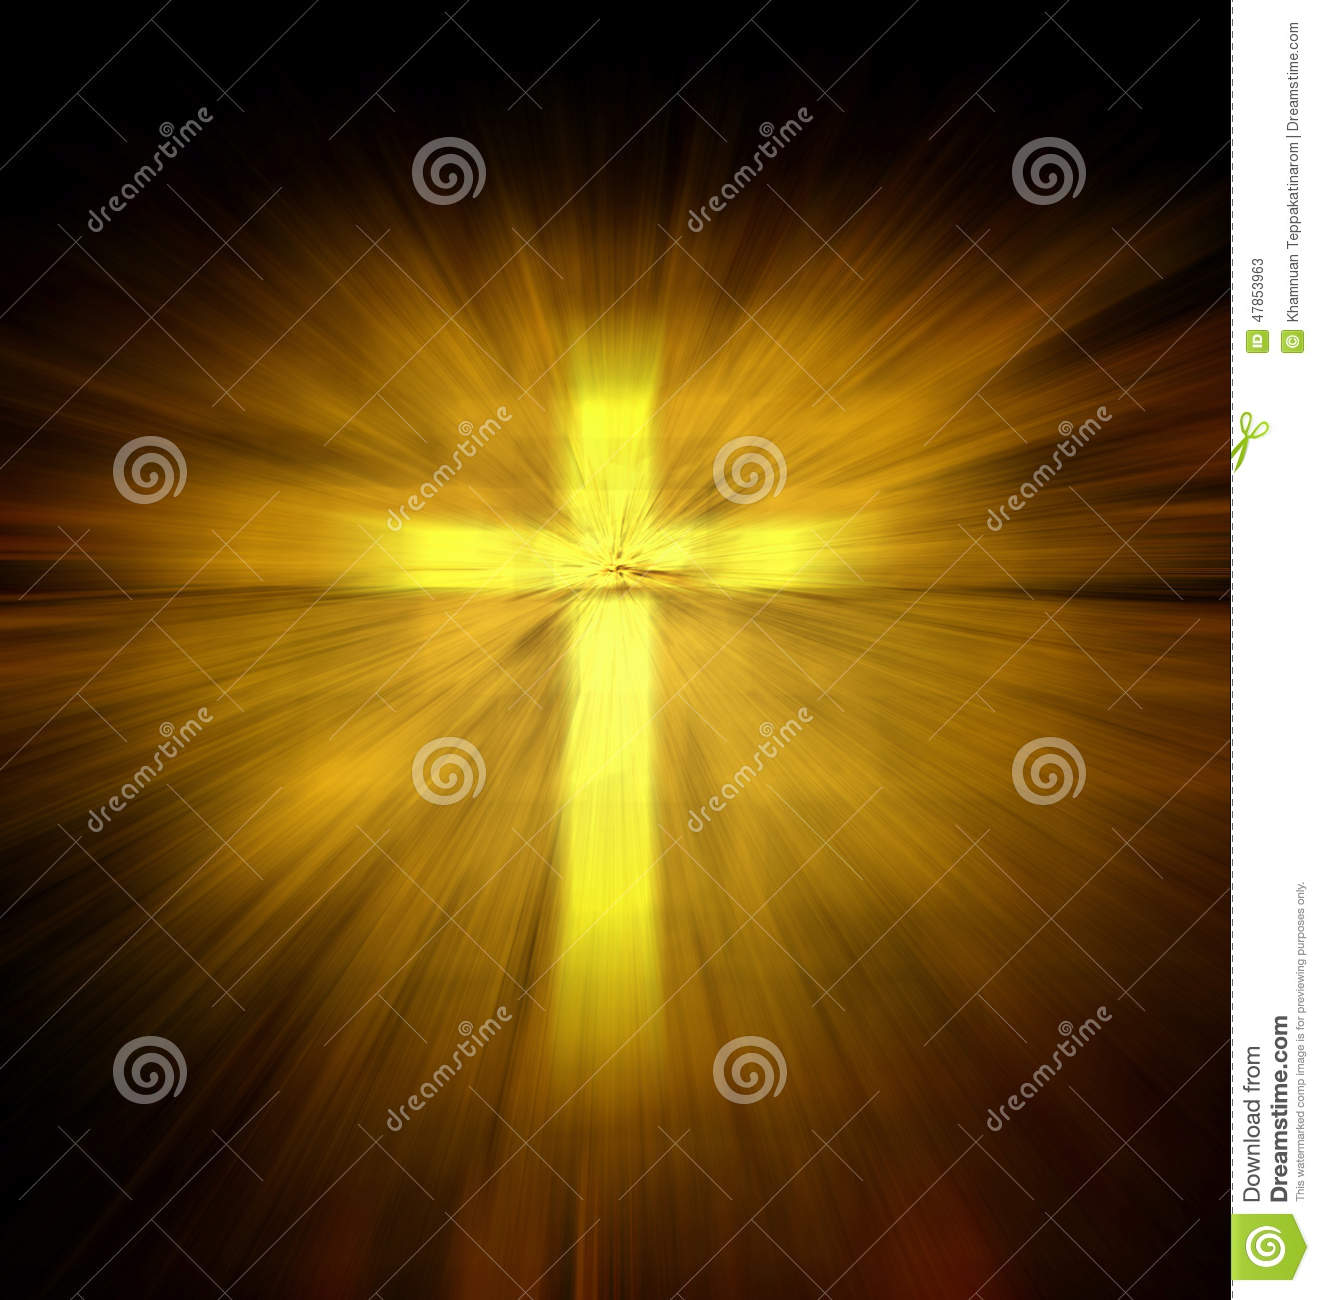 Christian religious cross stock image. Image of power ...